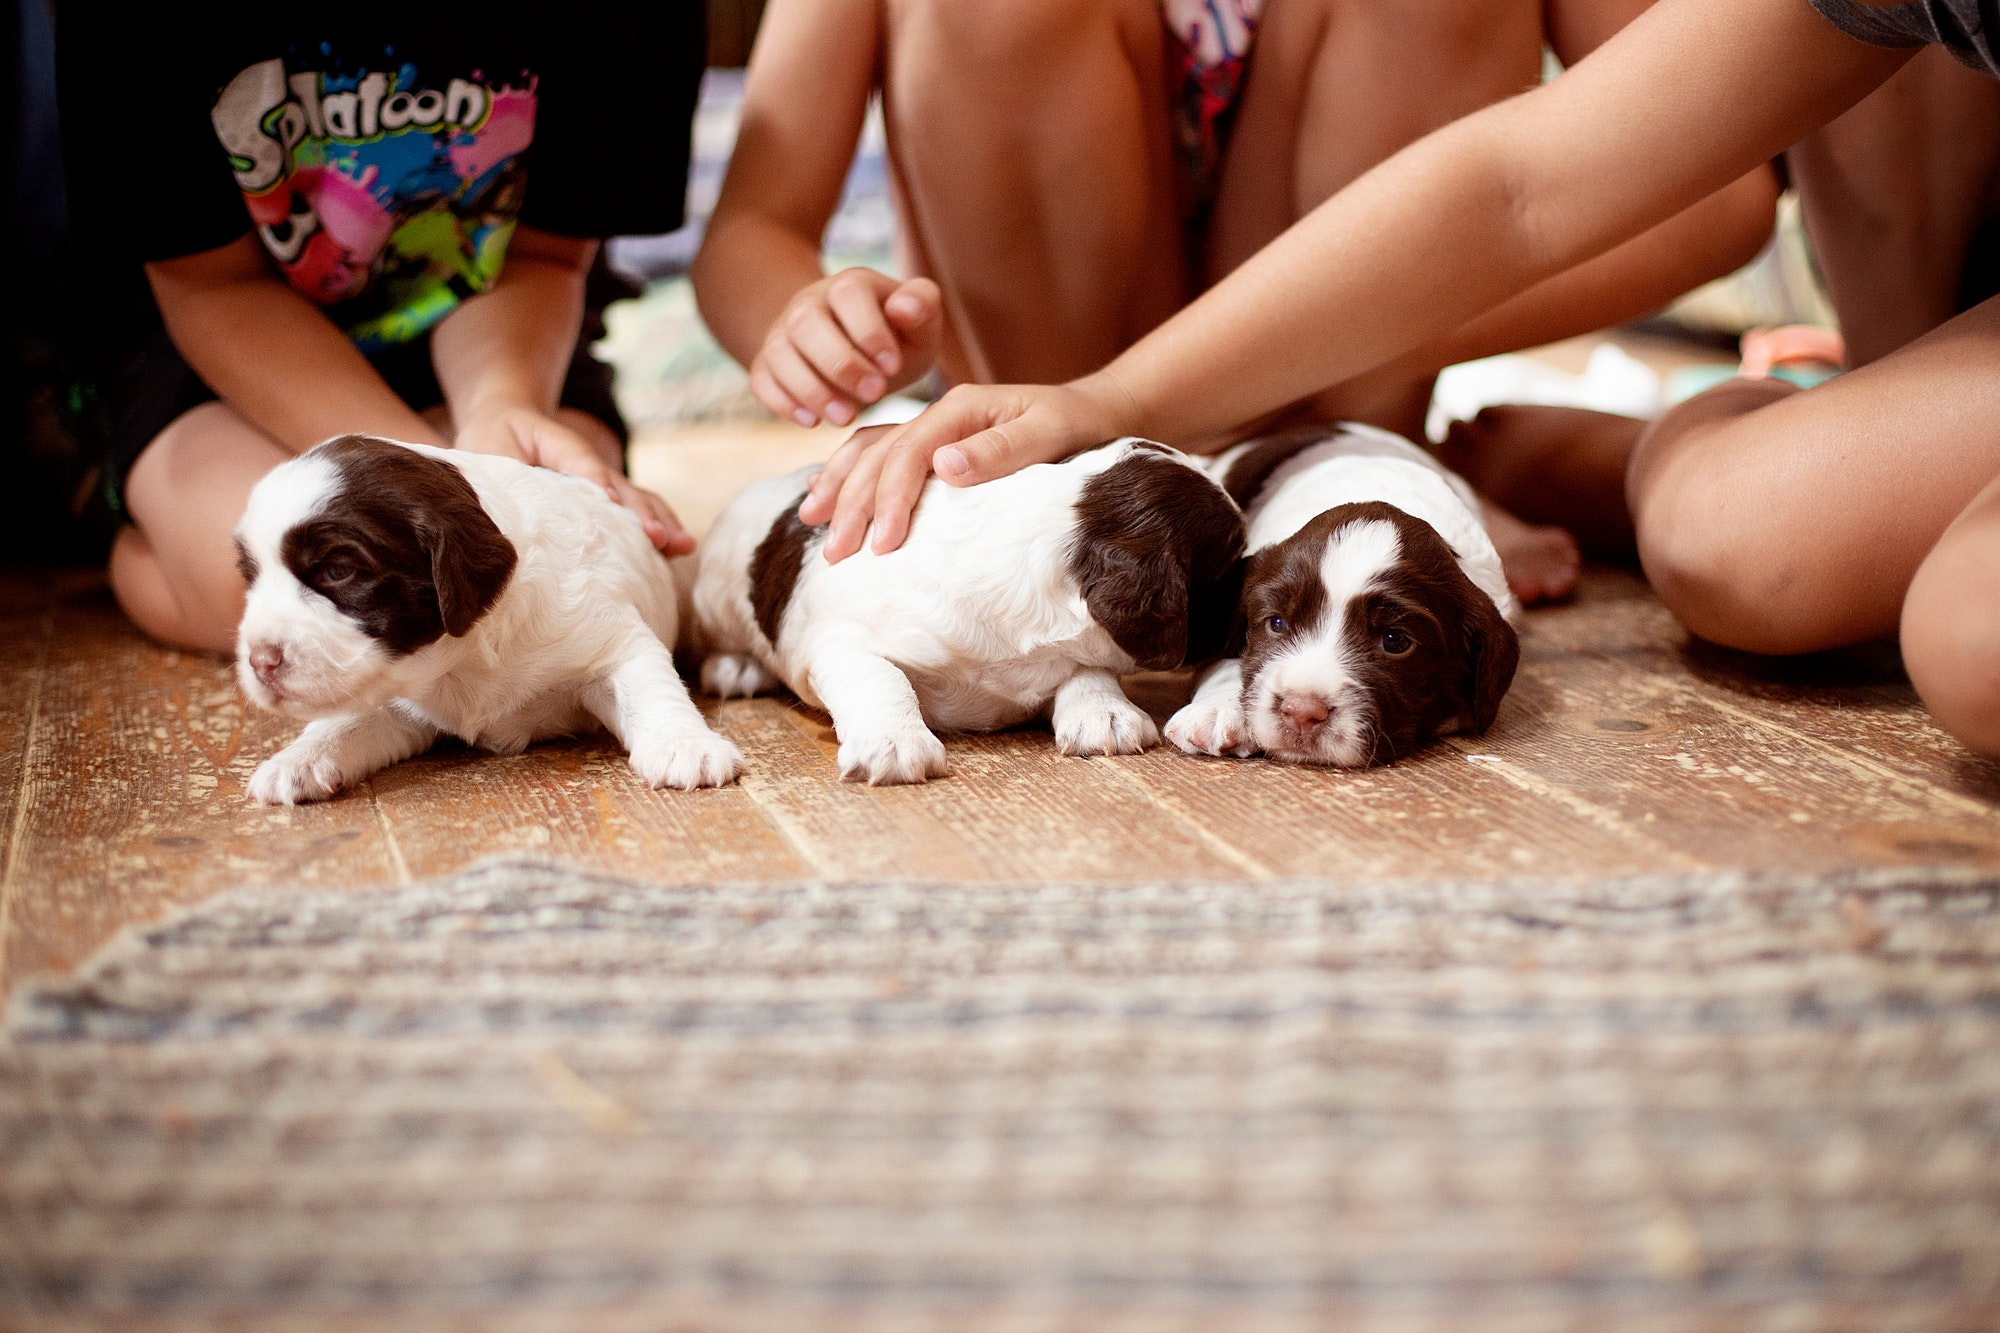 Puppies with kids, trying to pet the puppies